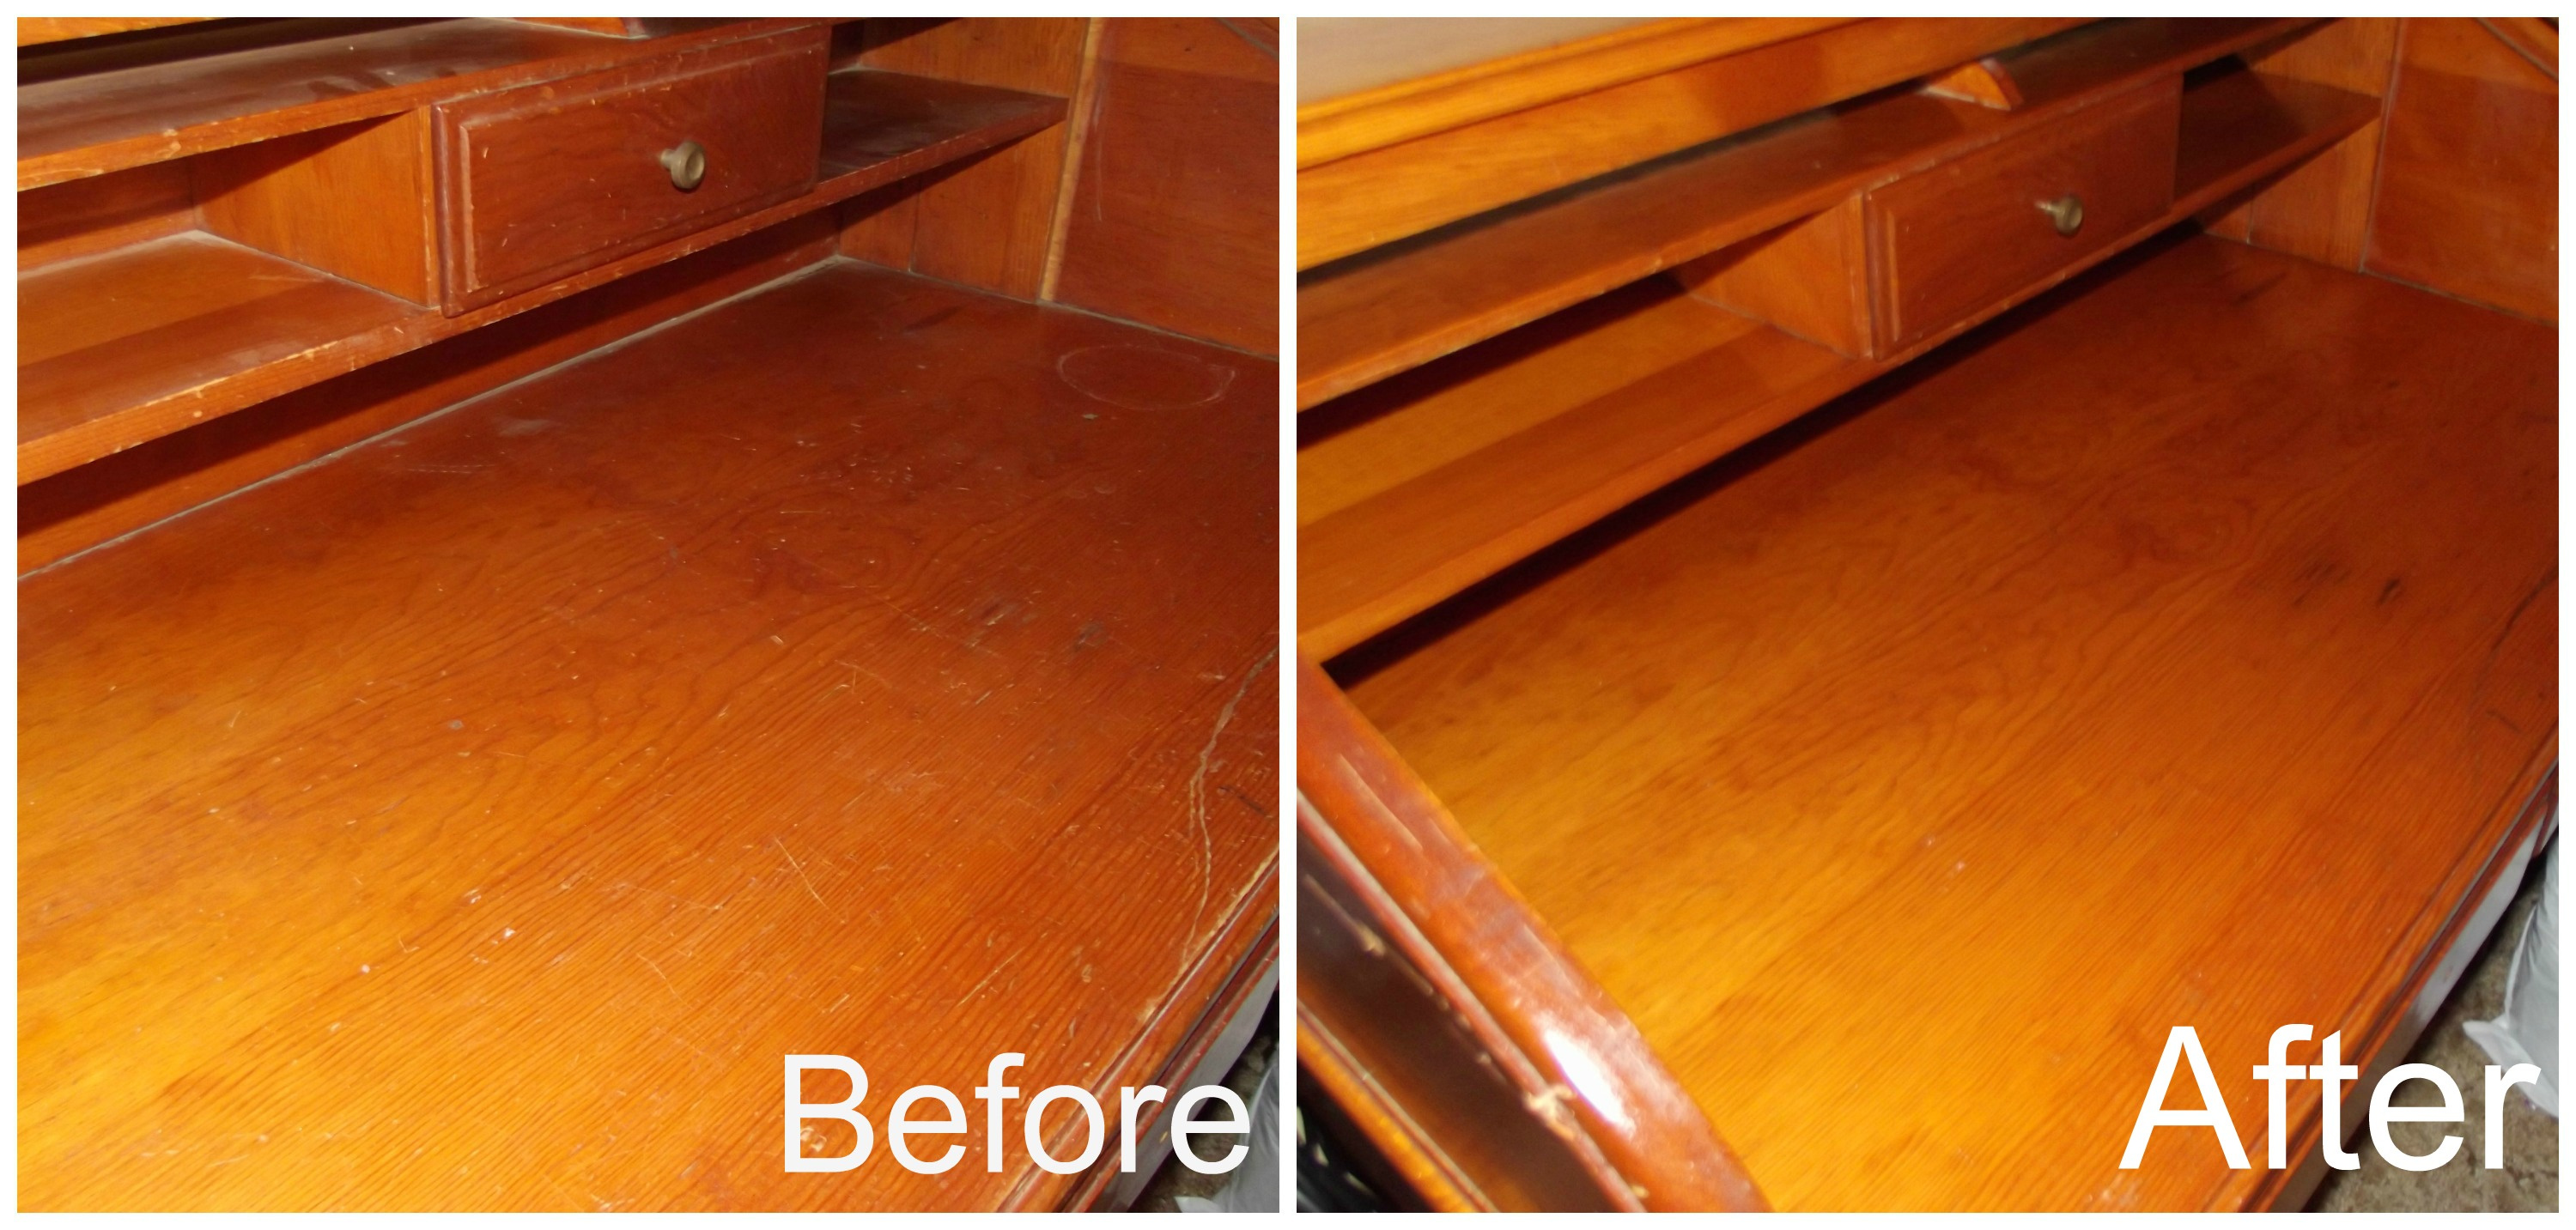 How to Fix Scratches in Your Wood Furniture